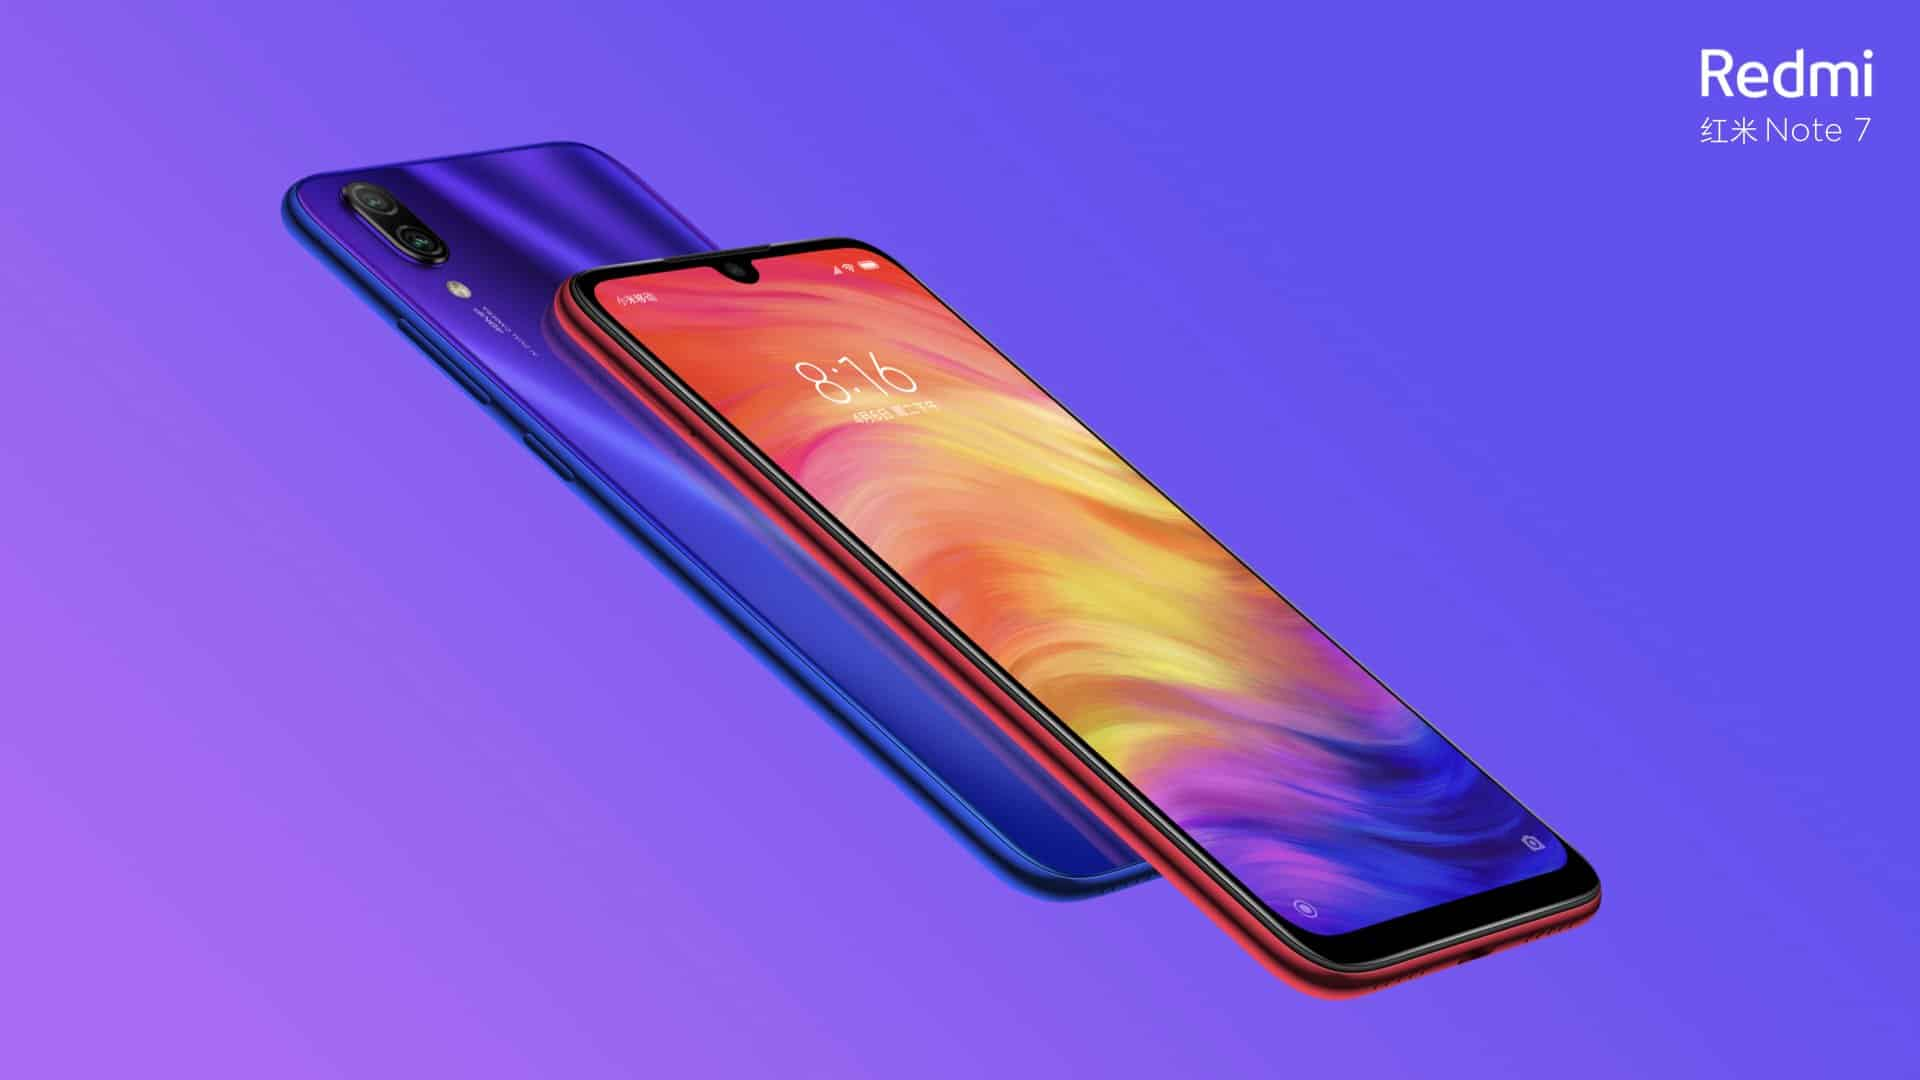 Redmi note 7 gone under 9 minutes in its first sale in china